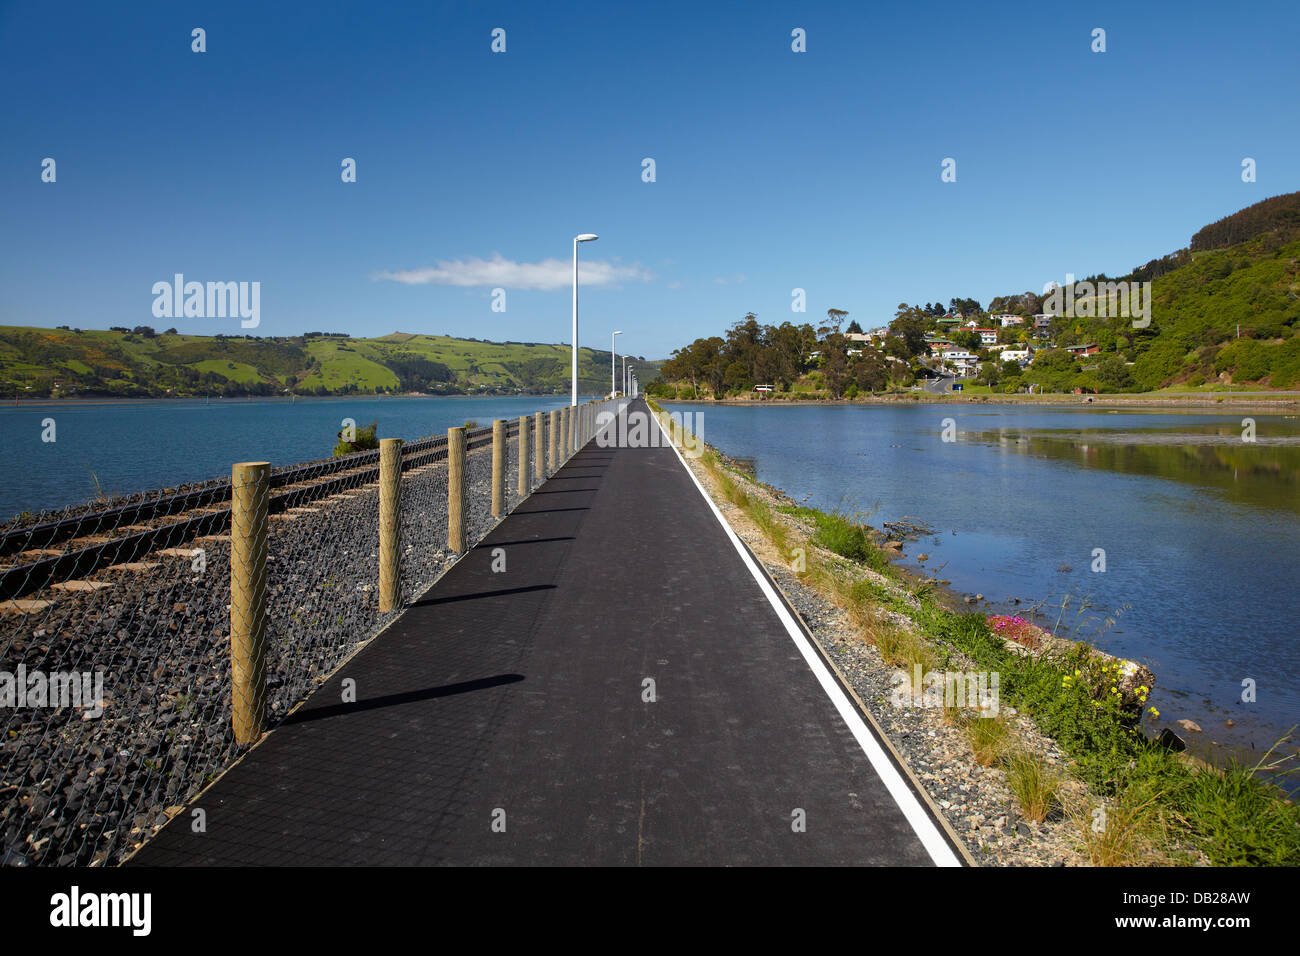 West Harbour Cycleway at St Leonards, near Port Chalmers, Dunedin, Otago, South Island, New Zealand - Stock Image